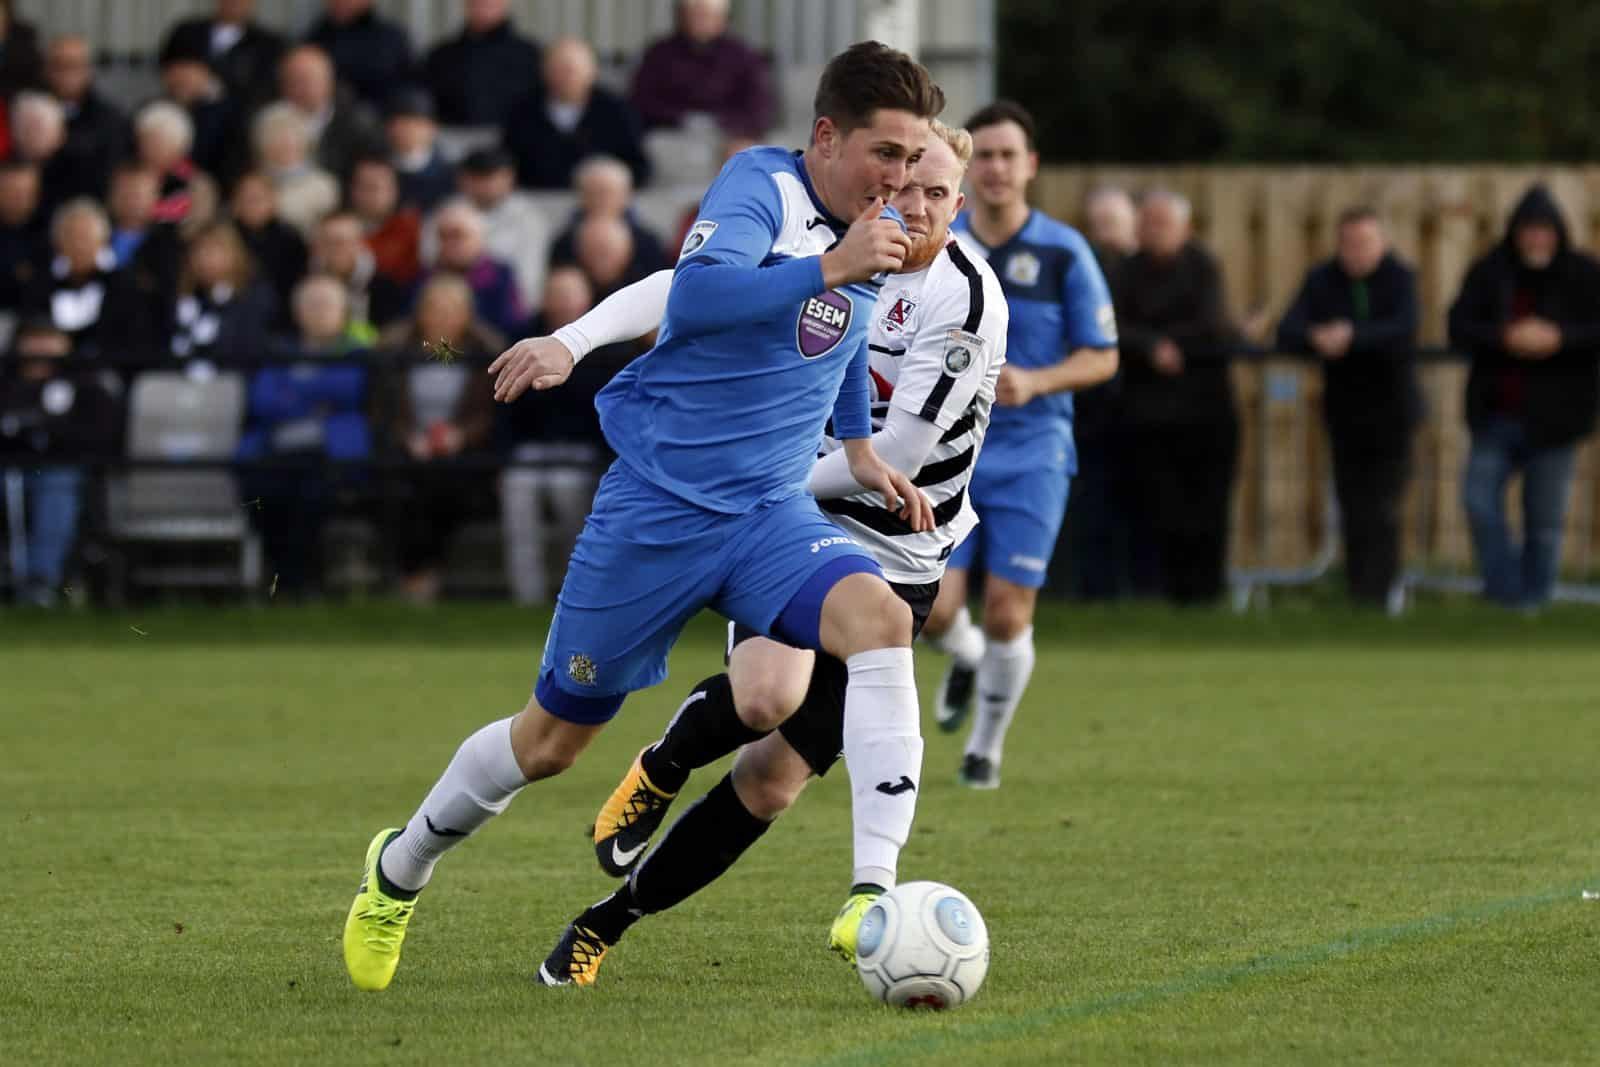 Connor Hampson, Stockport County